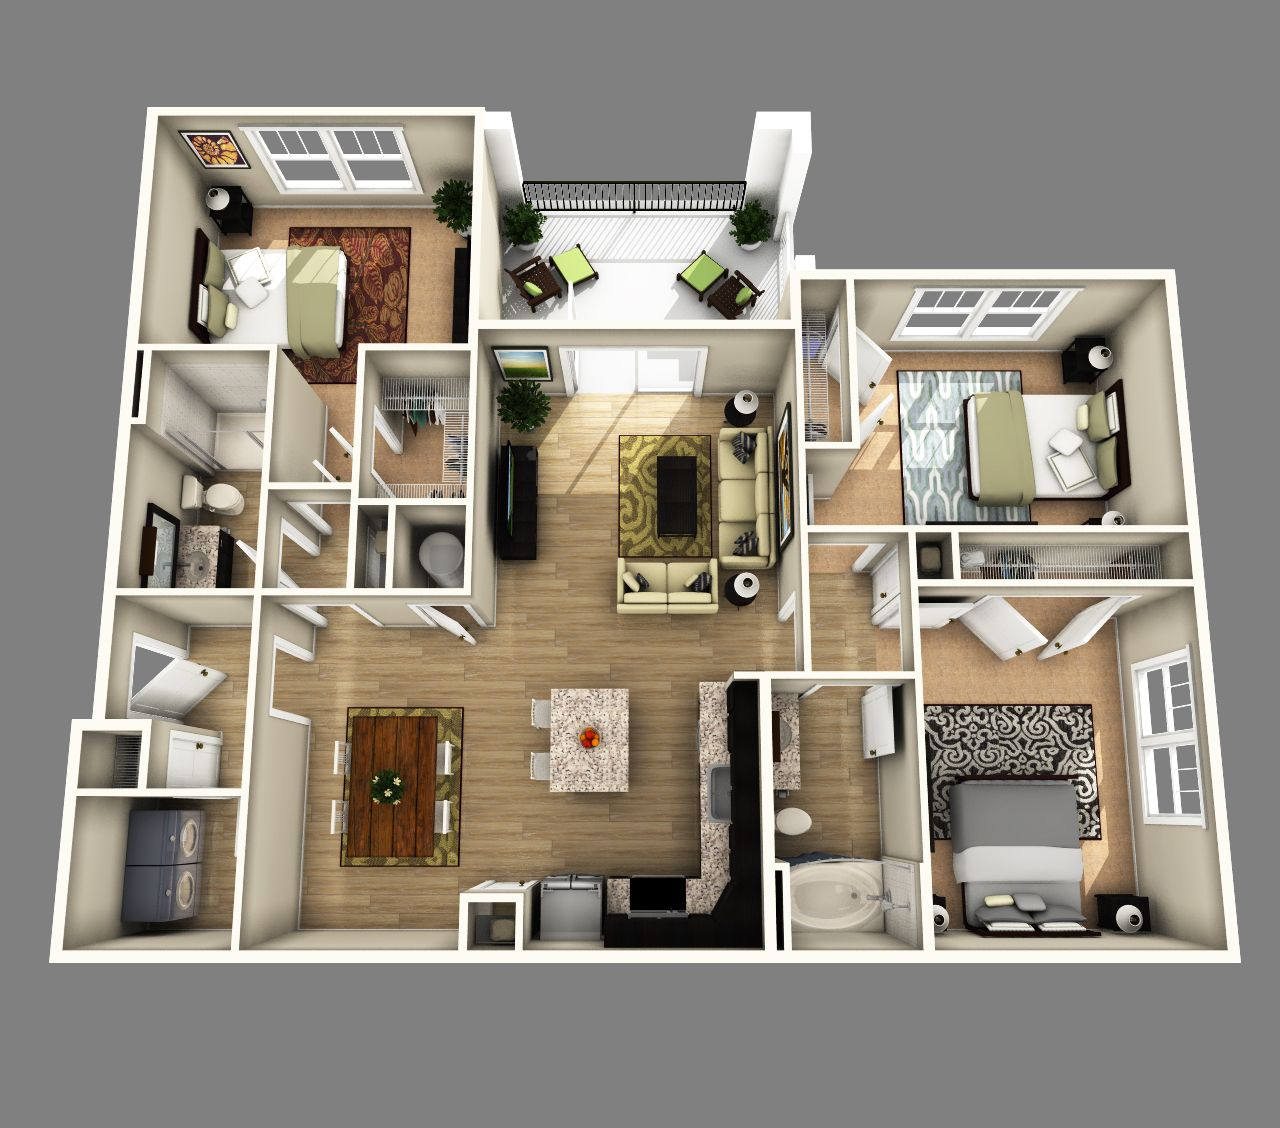 Exceptionnel 3 Bedrooms Apartments   Http://www.designbvild.com/4350/